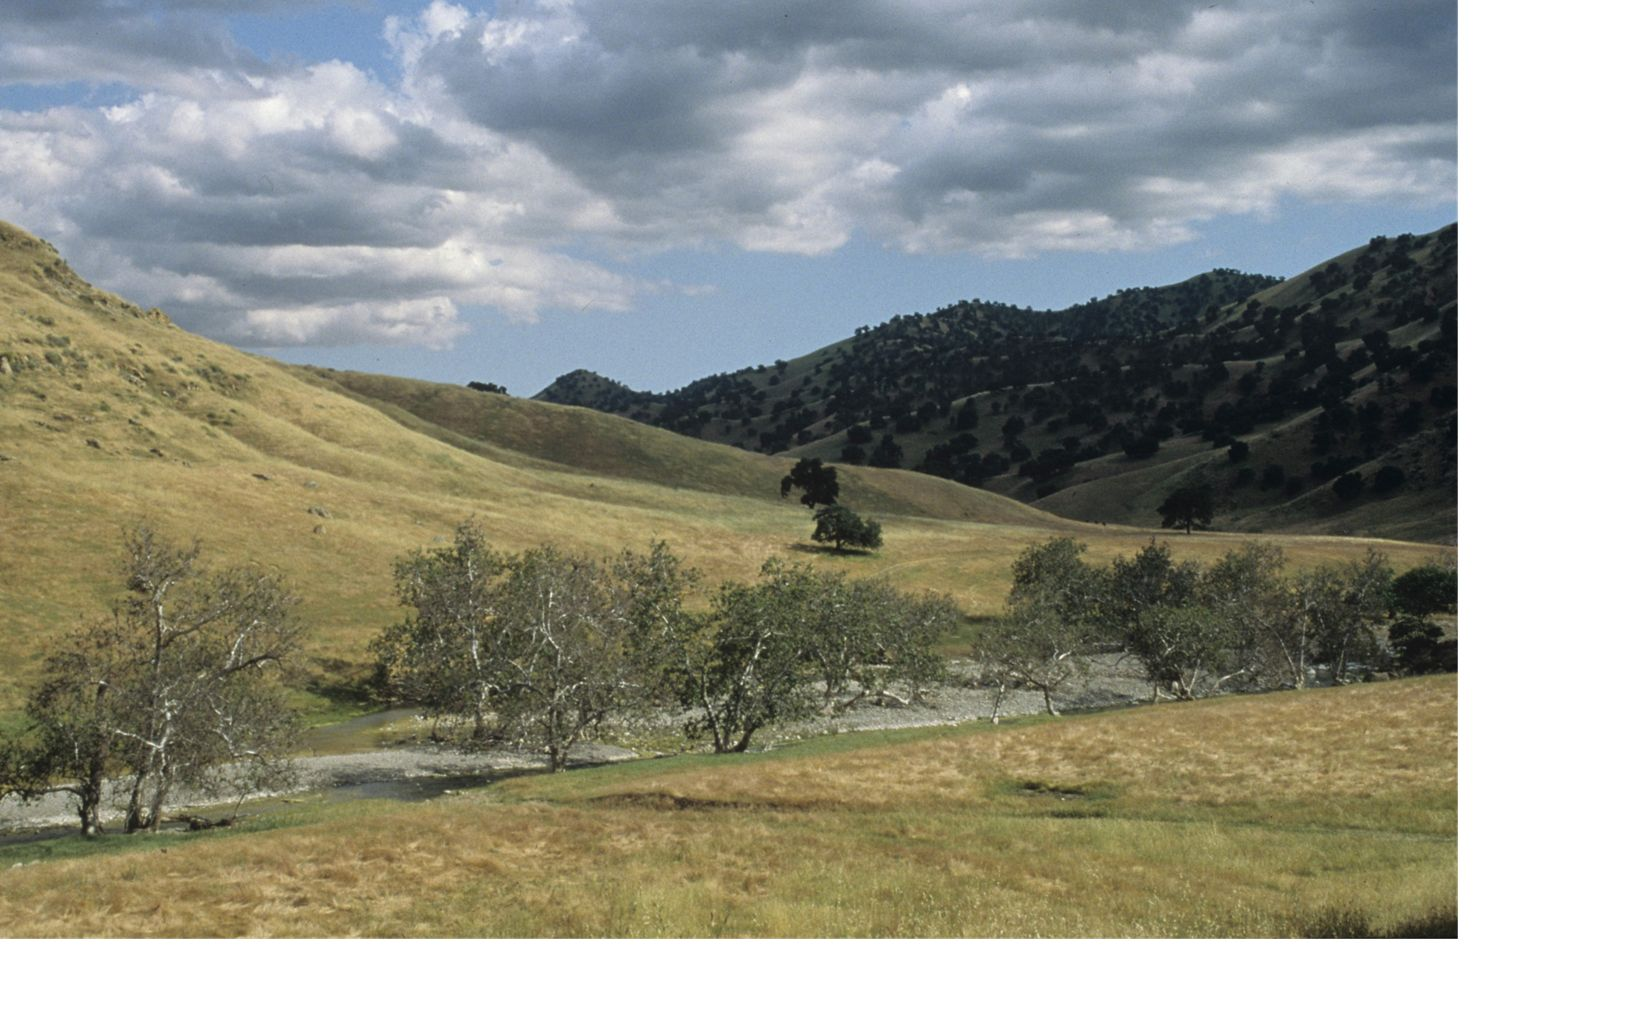 View of wildflowers carpeting grasslands in rolling oak country within the central Diablo Range of the Mount Hamilton wilderness area